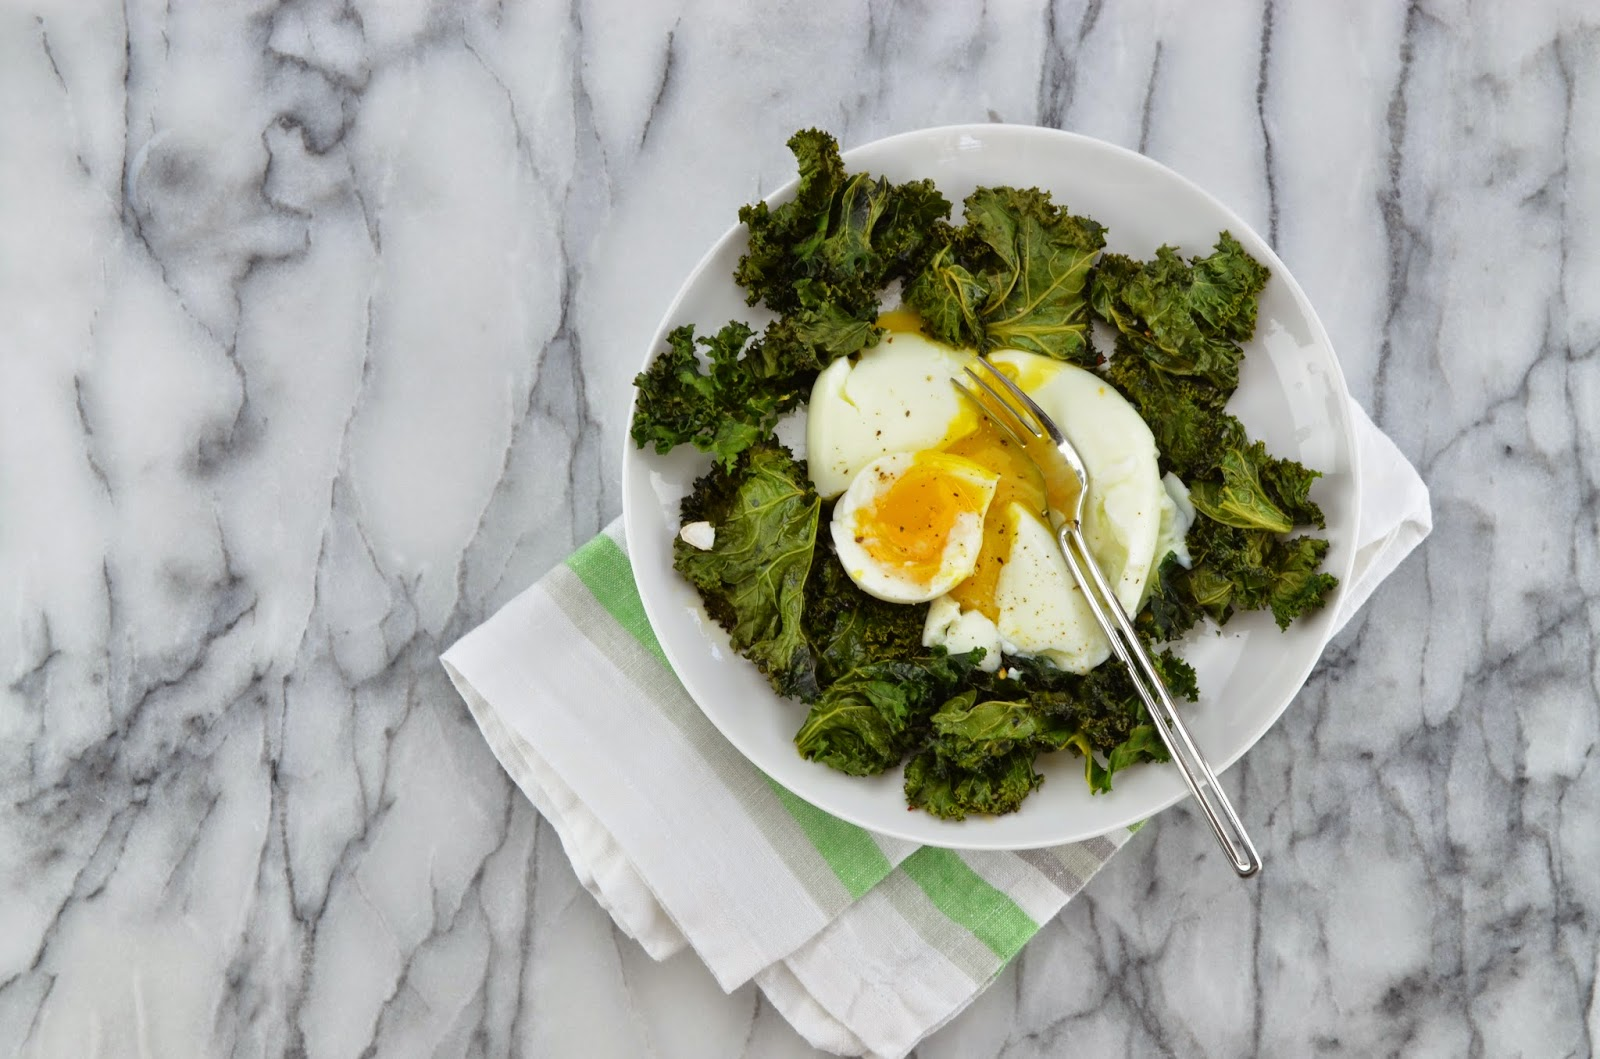 Roasted Kale and Soft Boiled Eggs - Smell of Rosemary.